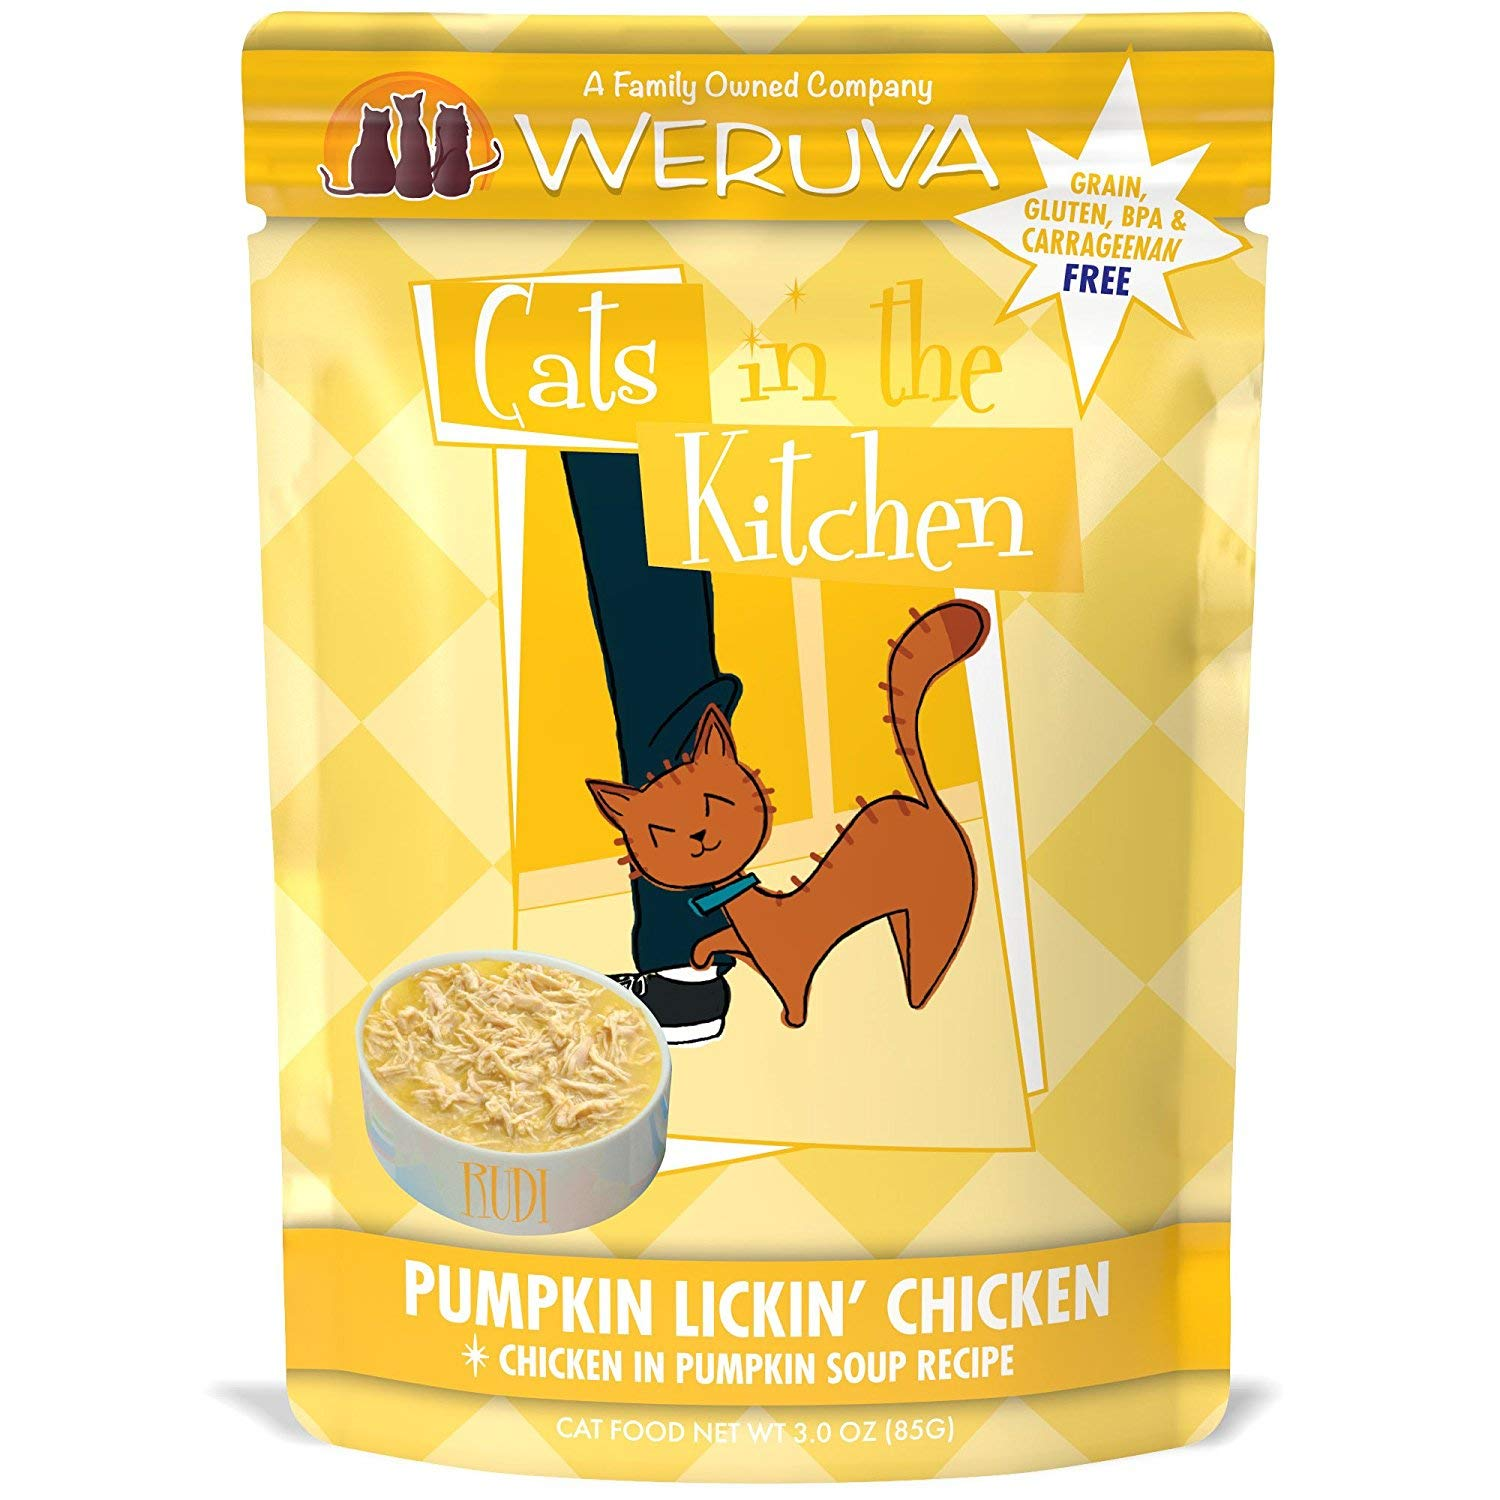 Weruva Cats in the Kitchen Pumpkin Lickin' Chicken in Pumpkin Soup Recipe Grain-Free Wet Cat Food, 3-oz pouch